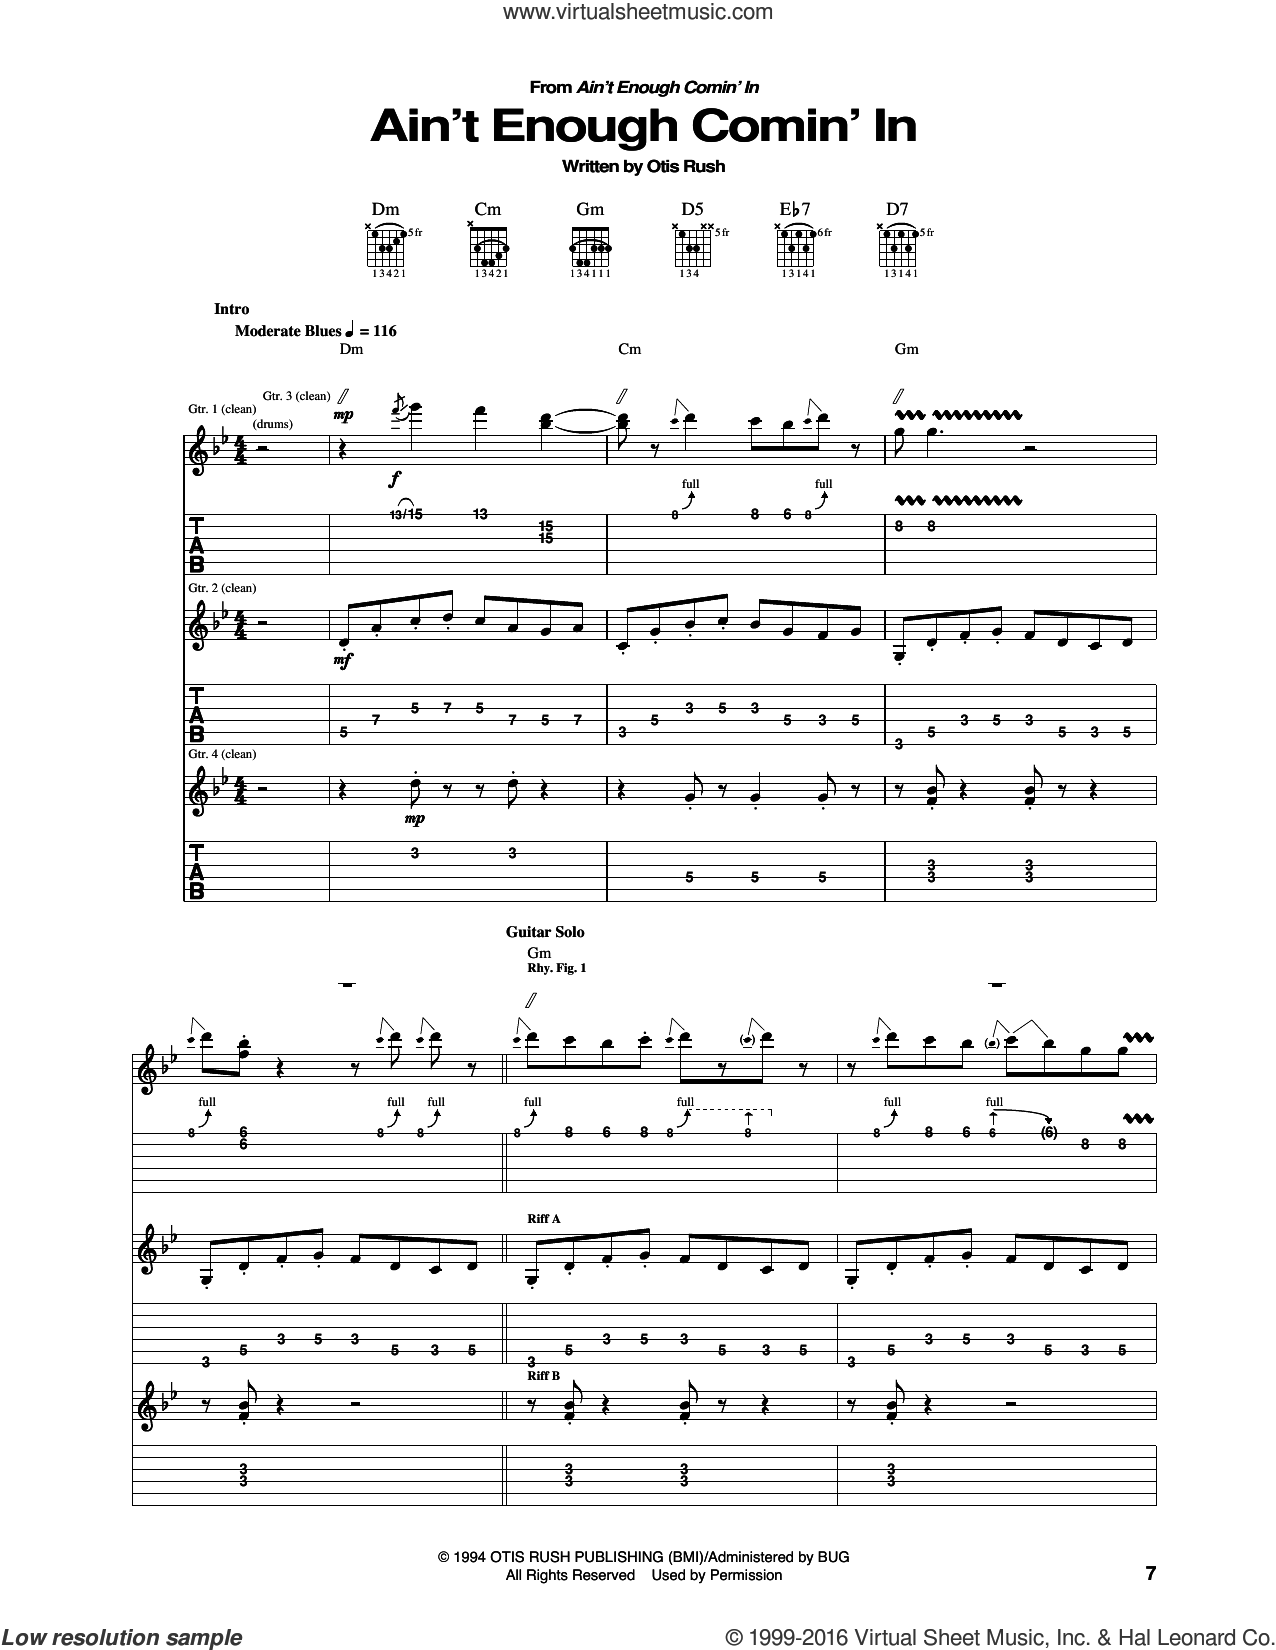 Ain't Enough Comin' In sheet music for guitar (tablature) by Otis Rush, intermediate. Score Image Preview.